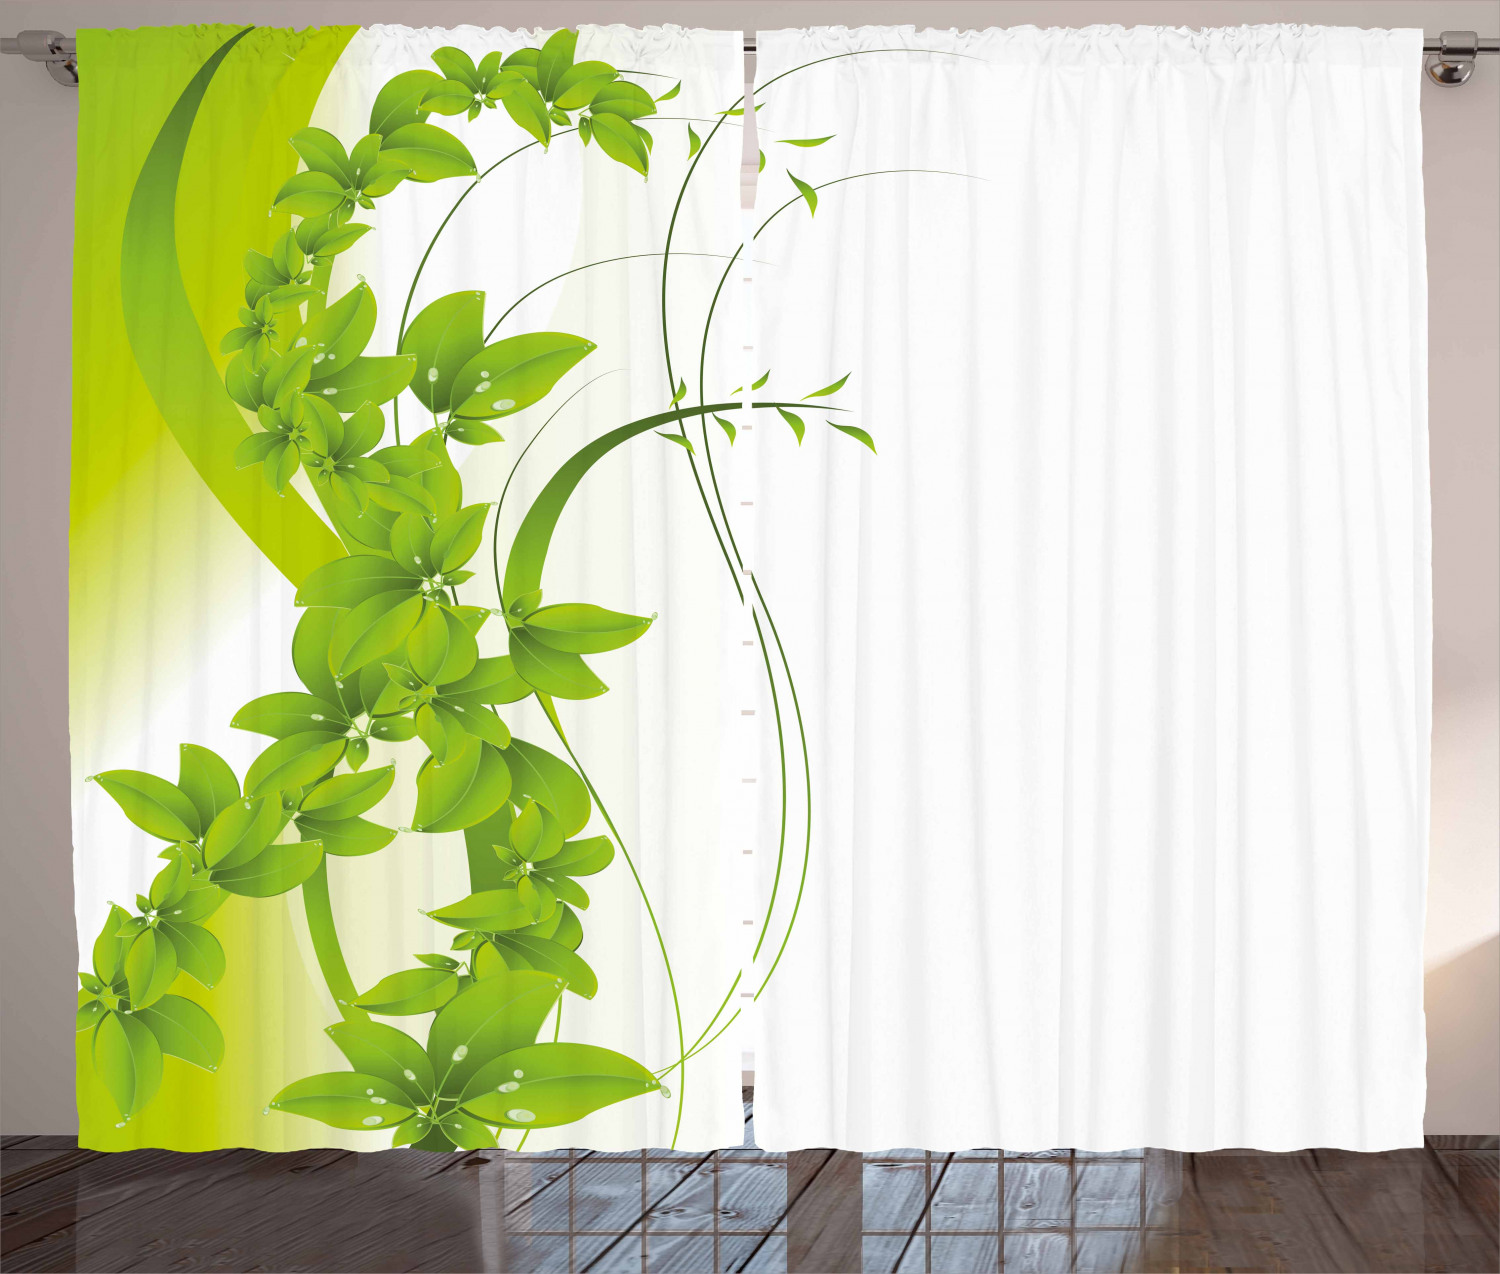 Green Curtains 2 Panels Set Blossoming Flowers Natural Fantasy Theme Abstract Botanical Garden Design Window Drapes For Living Room Bedroom 108w X